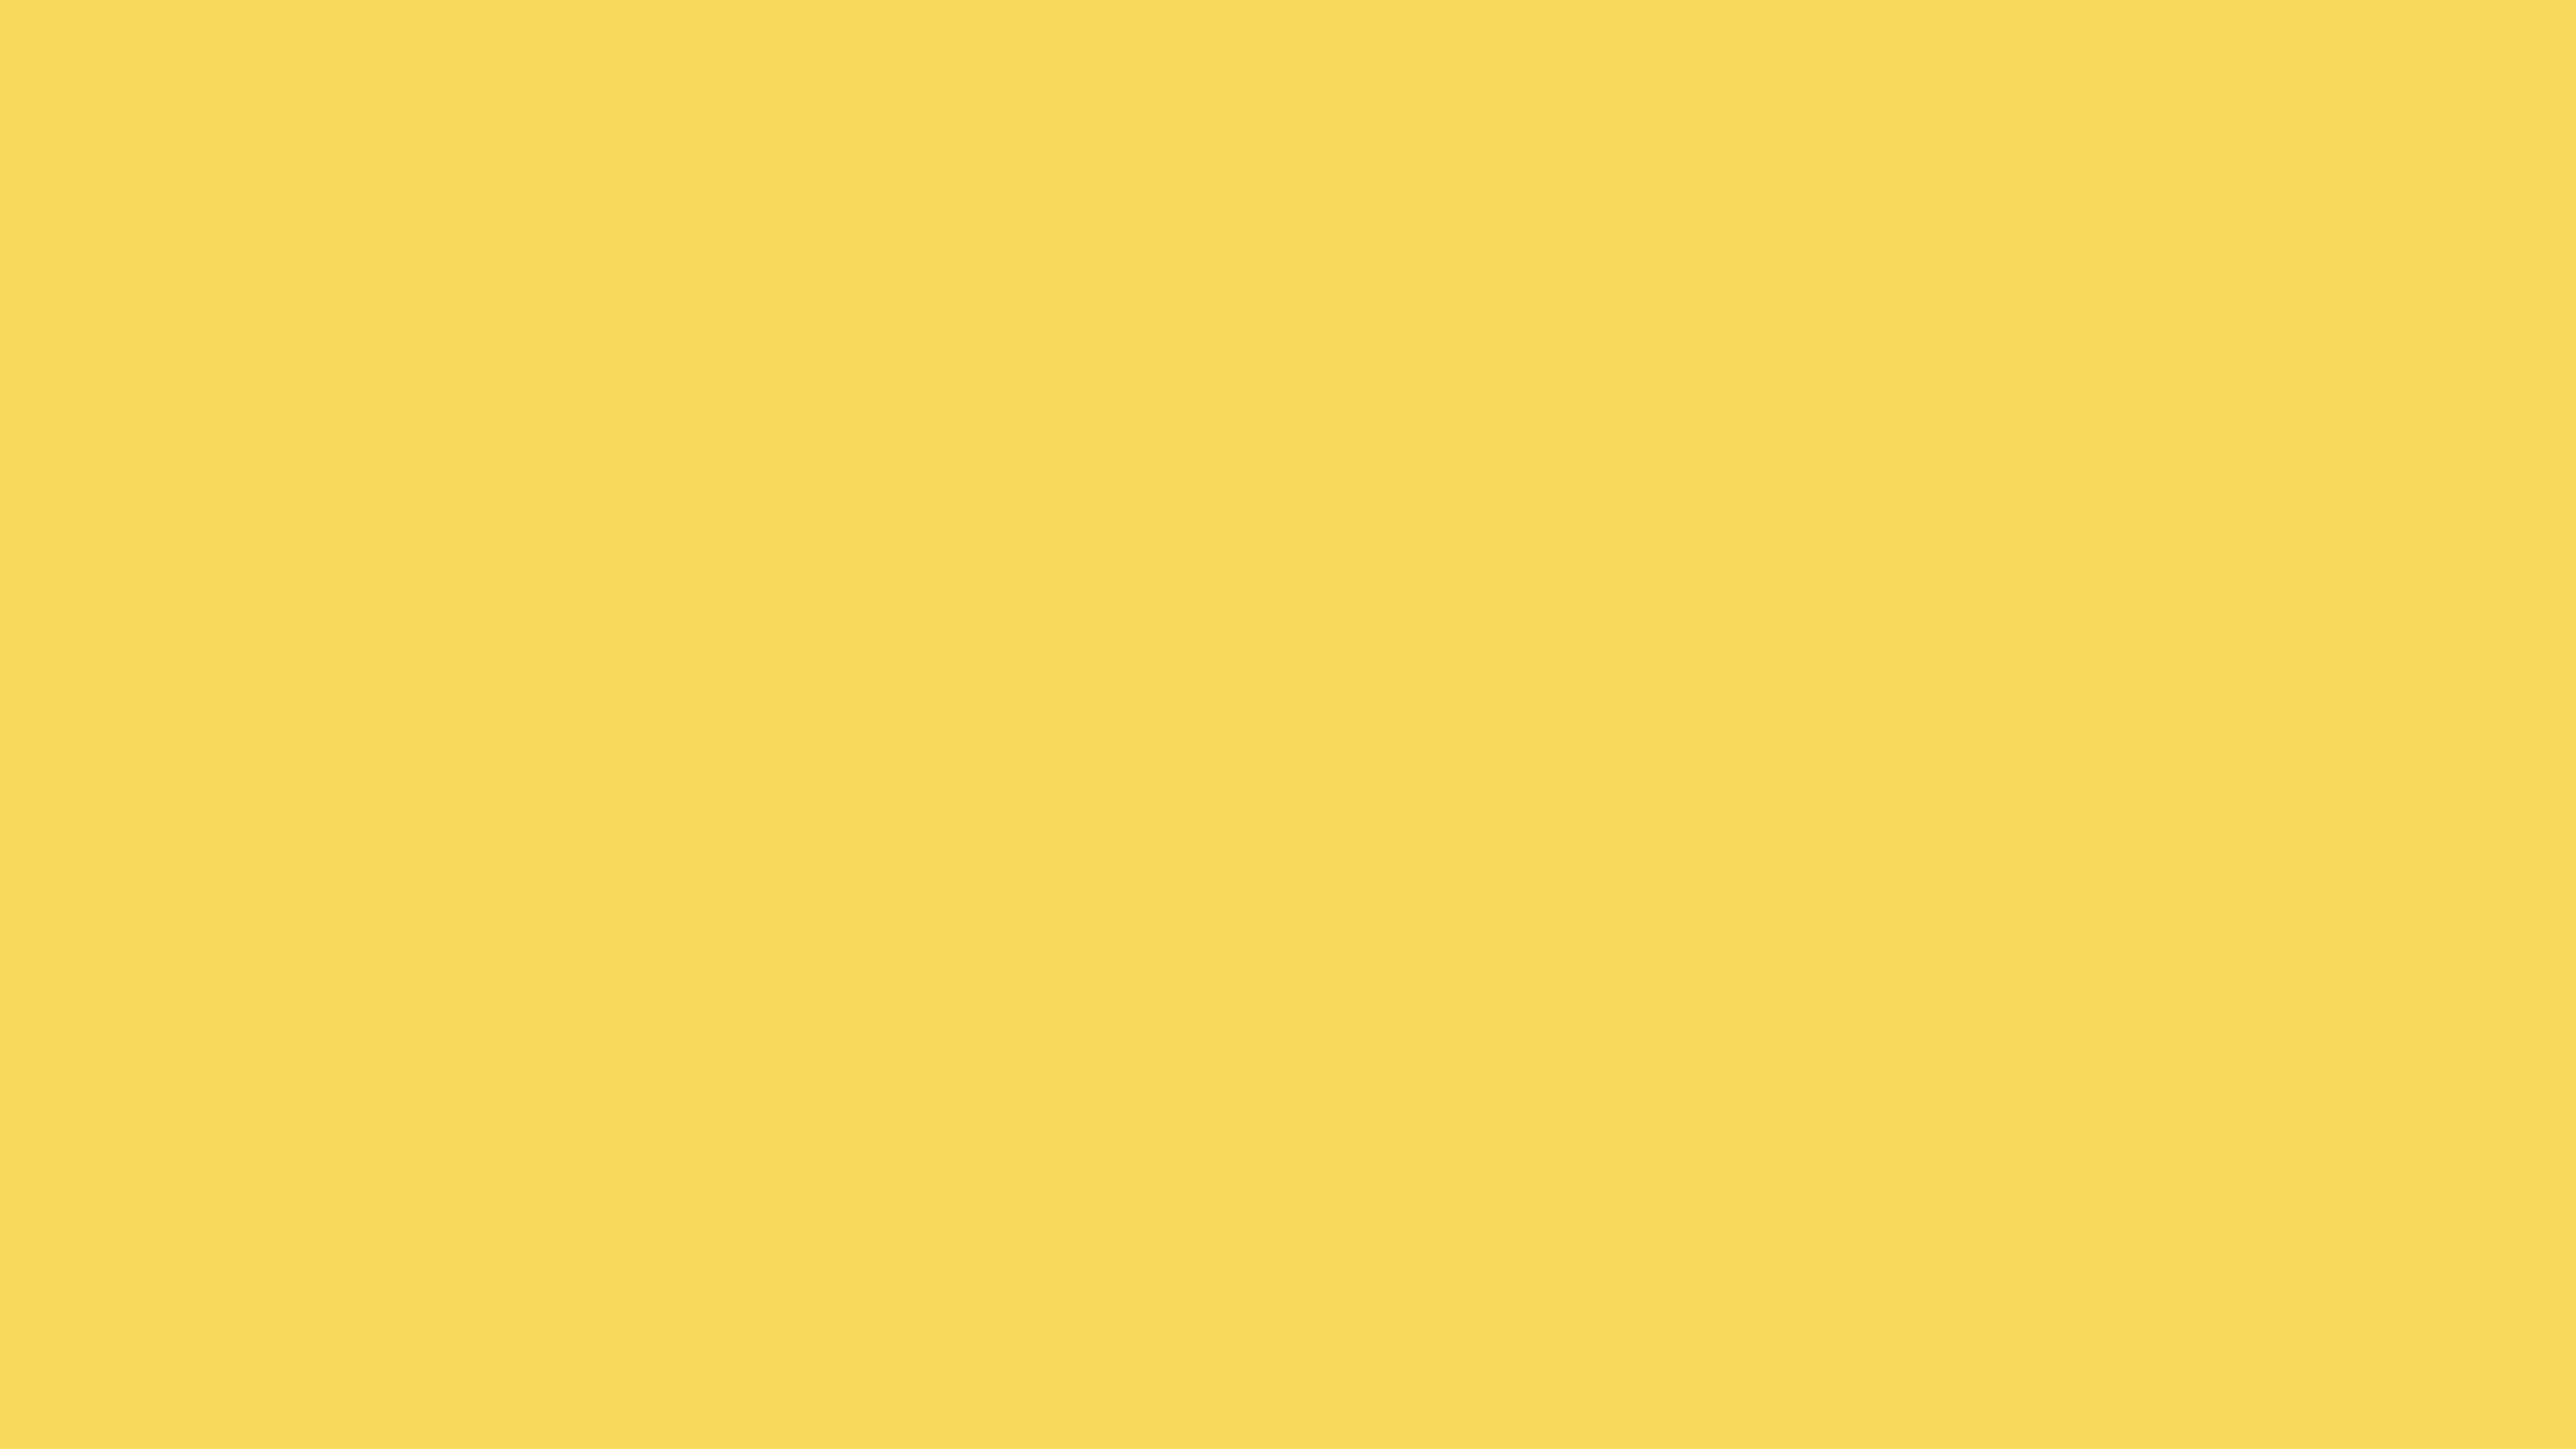 7680x4320 Naples Yellow Solid Color Background